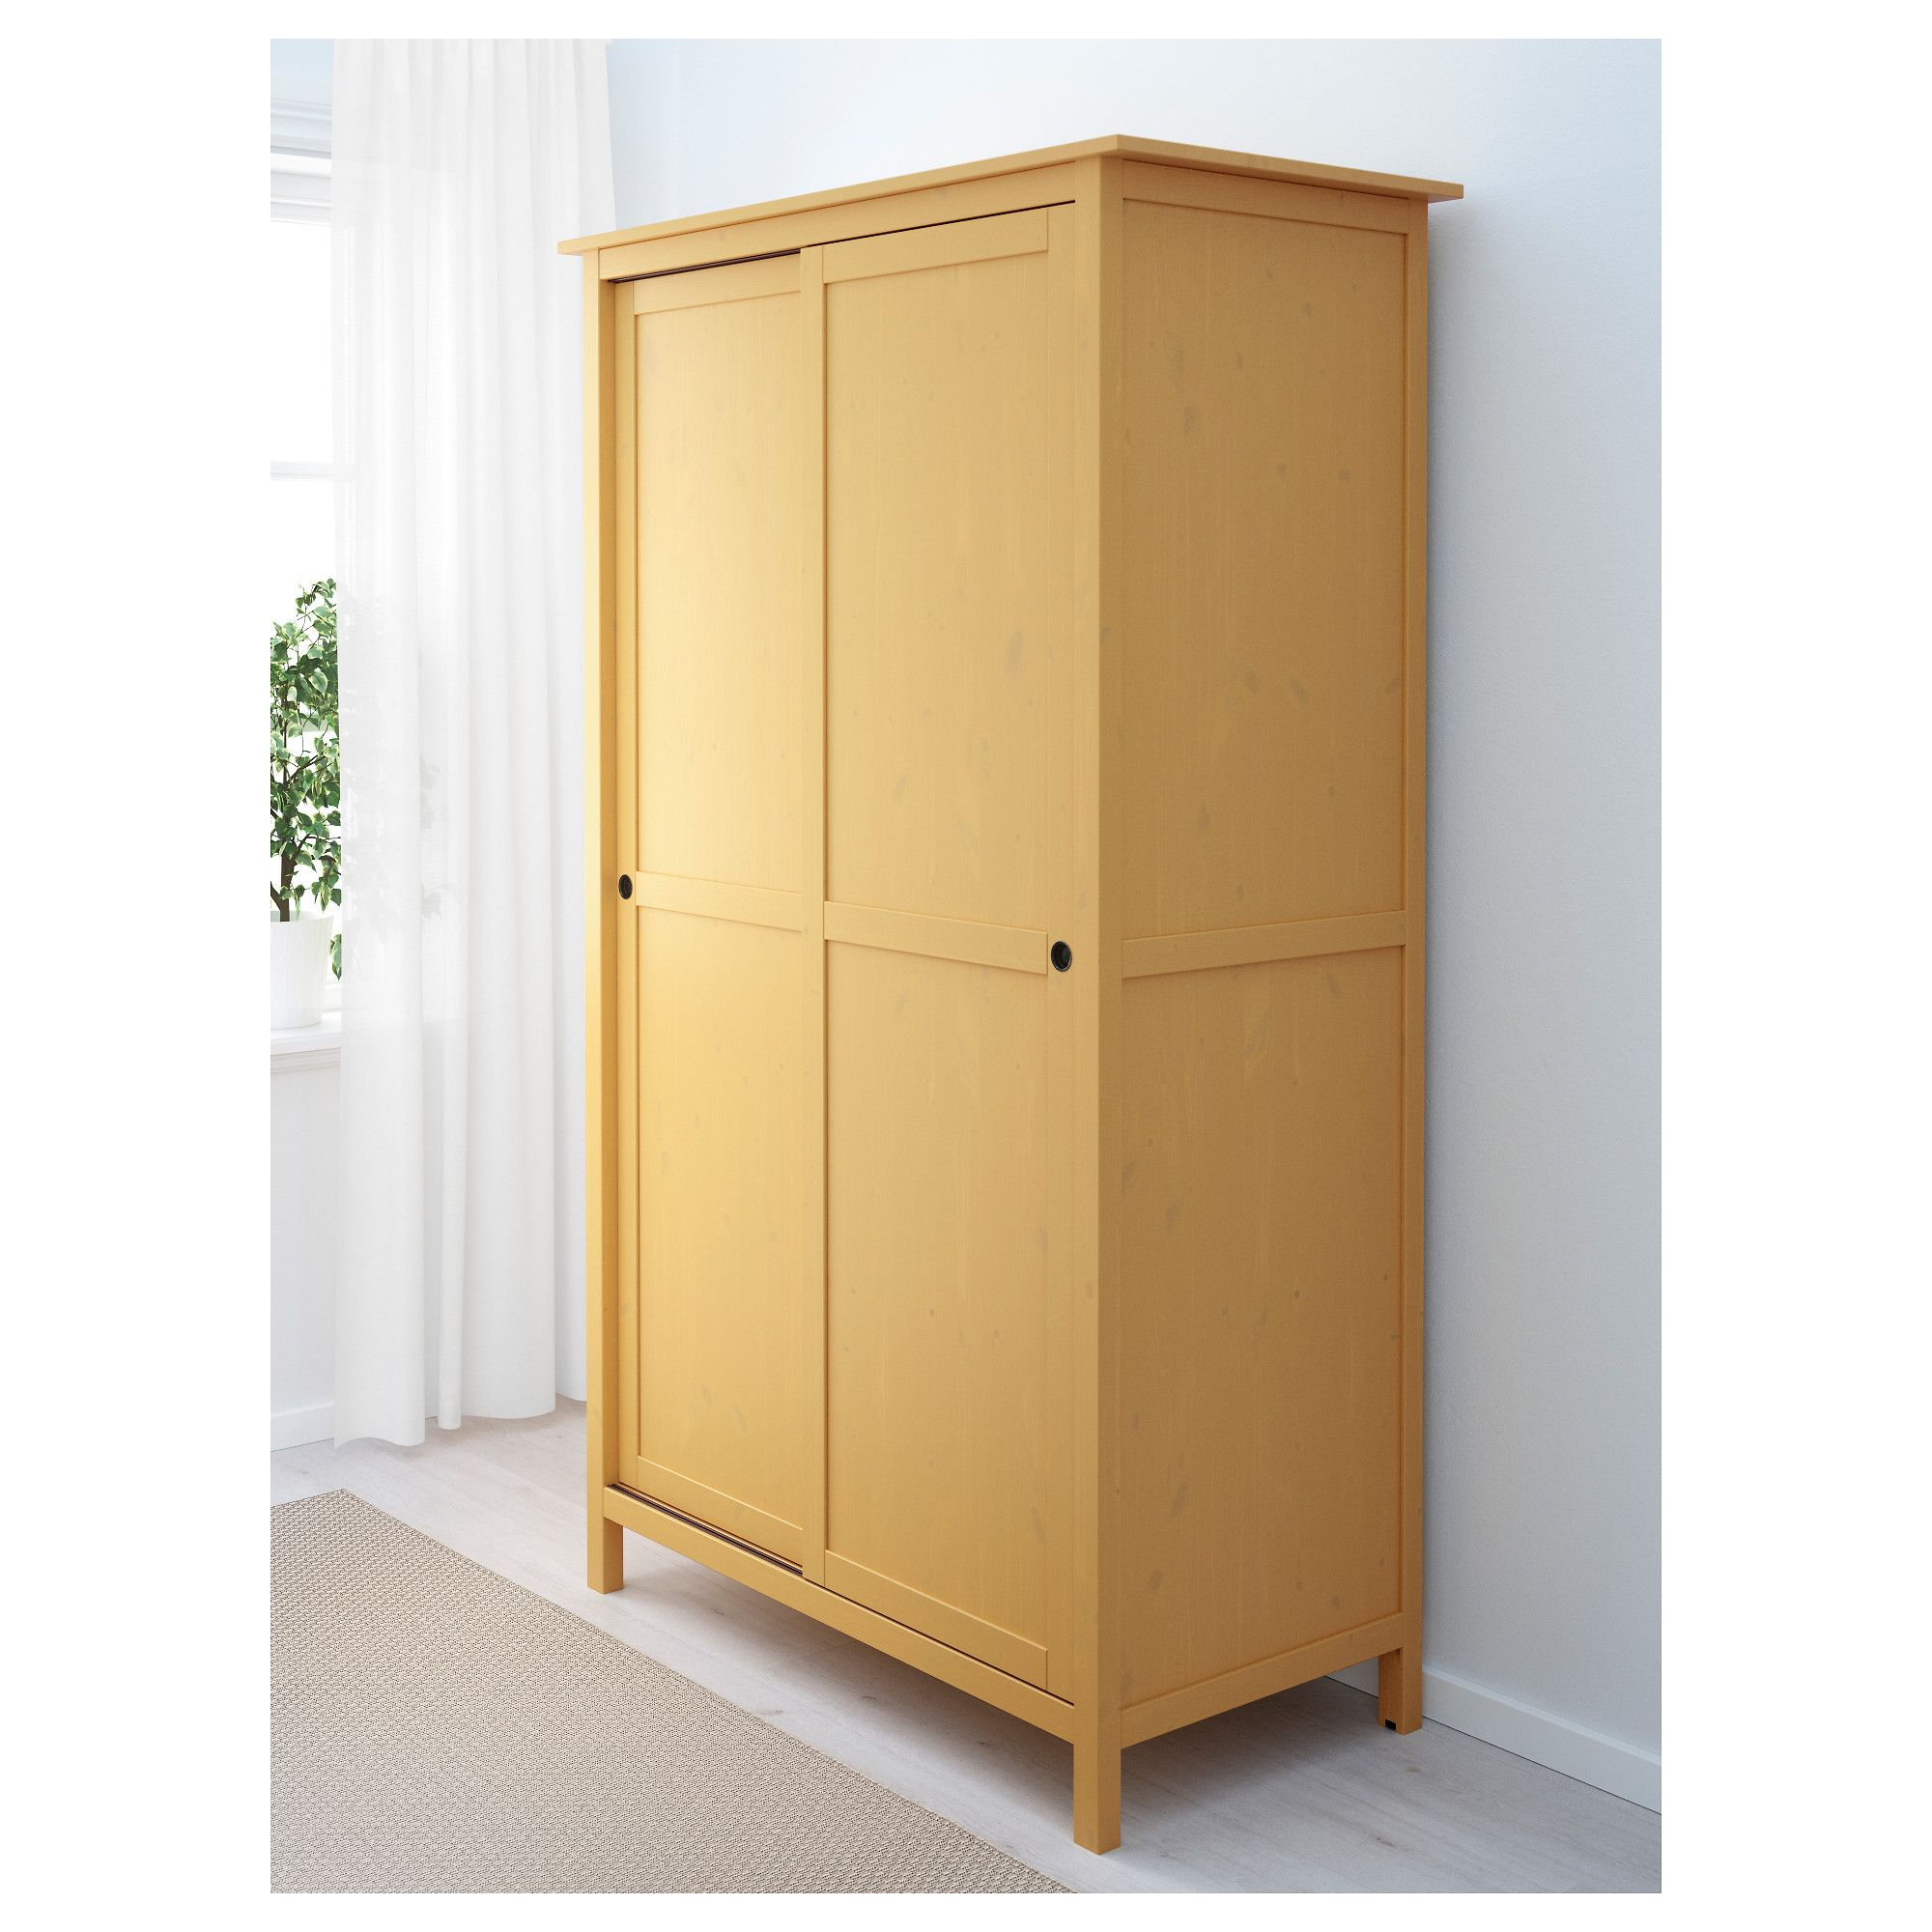 wardrobe shopping dombas ideal fitted diy home decorating pax the best wardrobes of and ikea